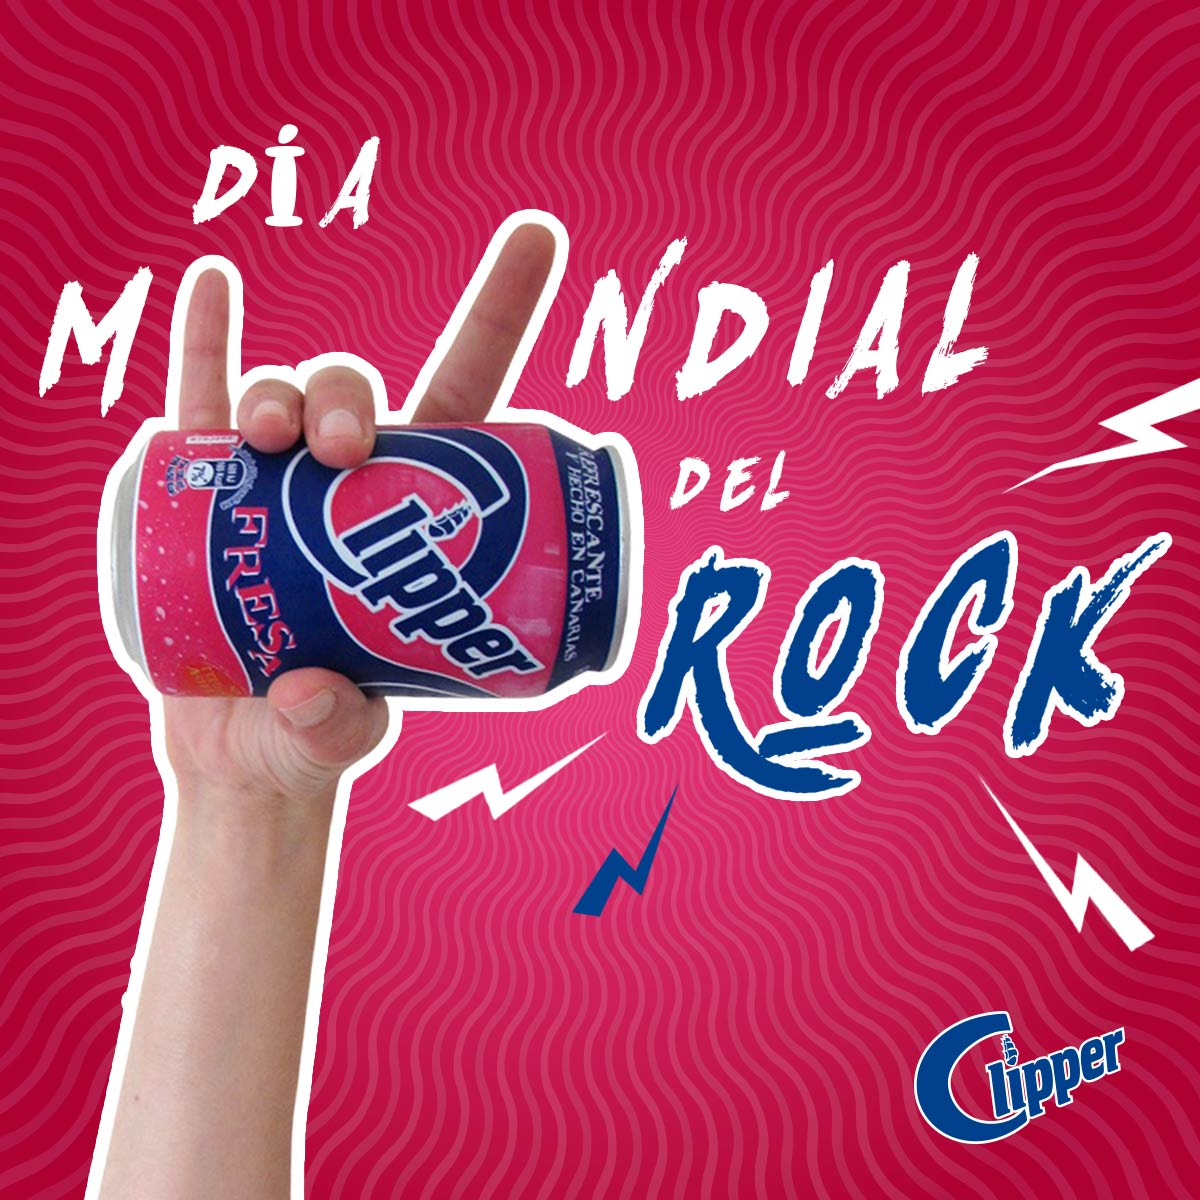 Clipper - Oficial's photo on Mick Jagger